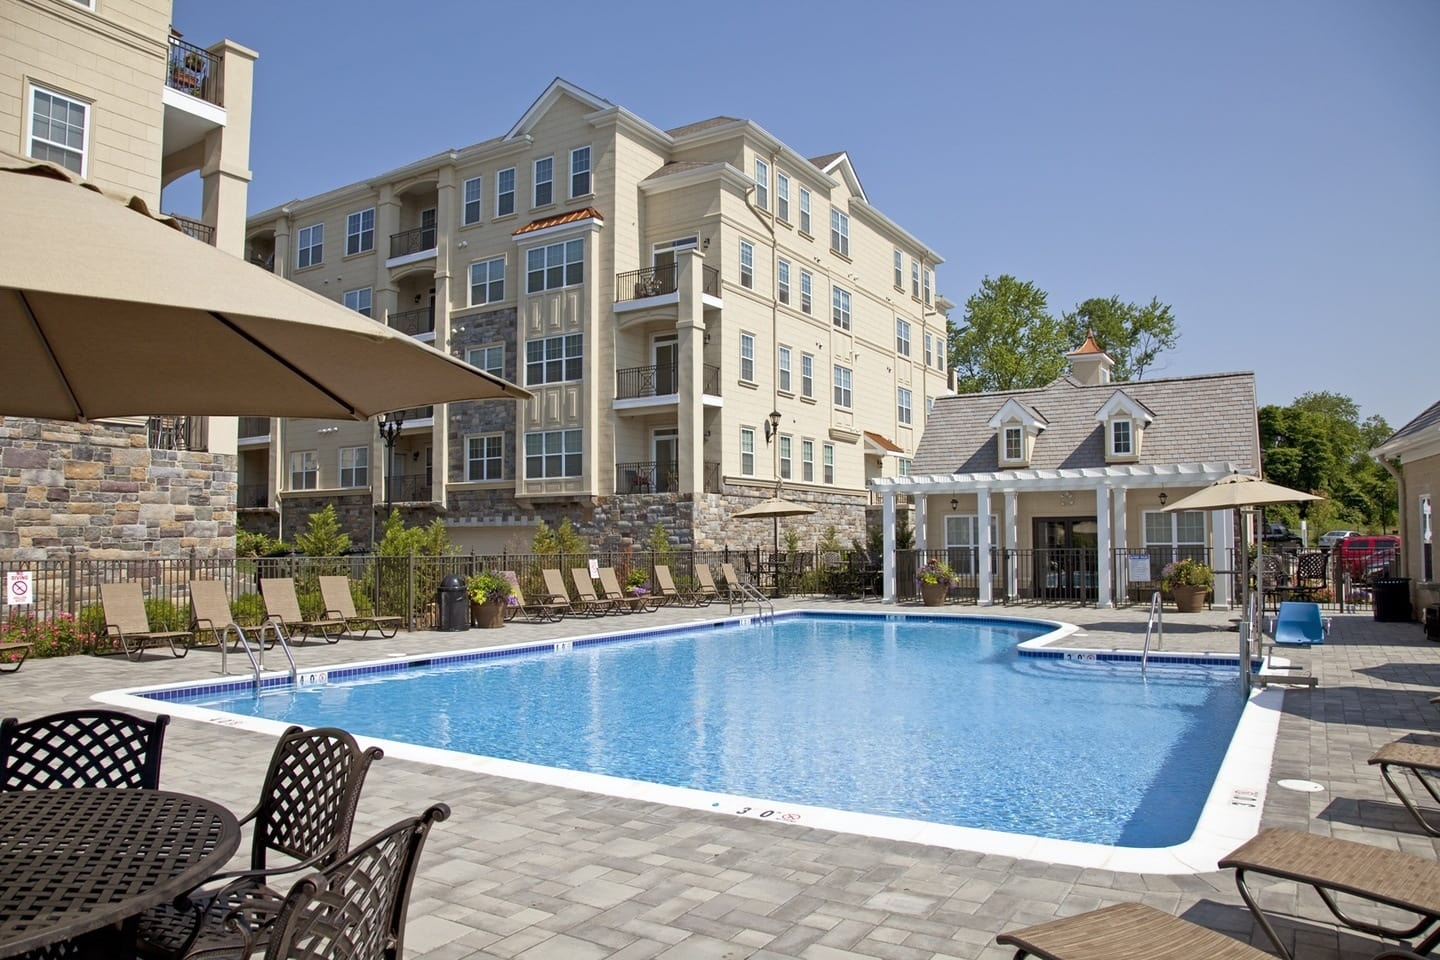 Apartments in Lebanon, NJ